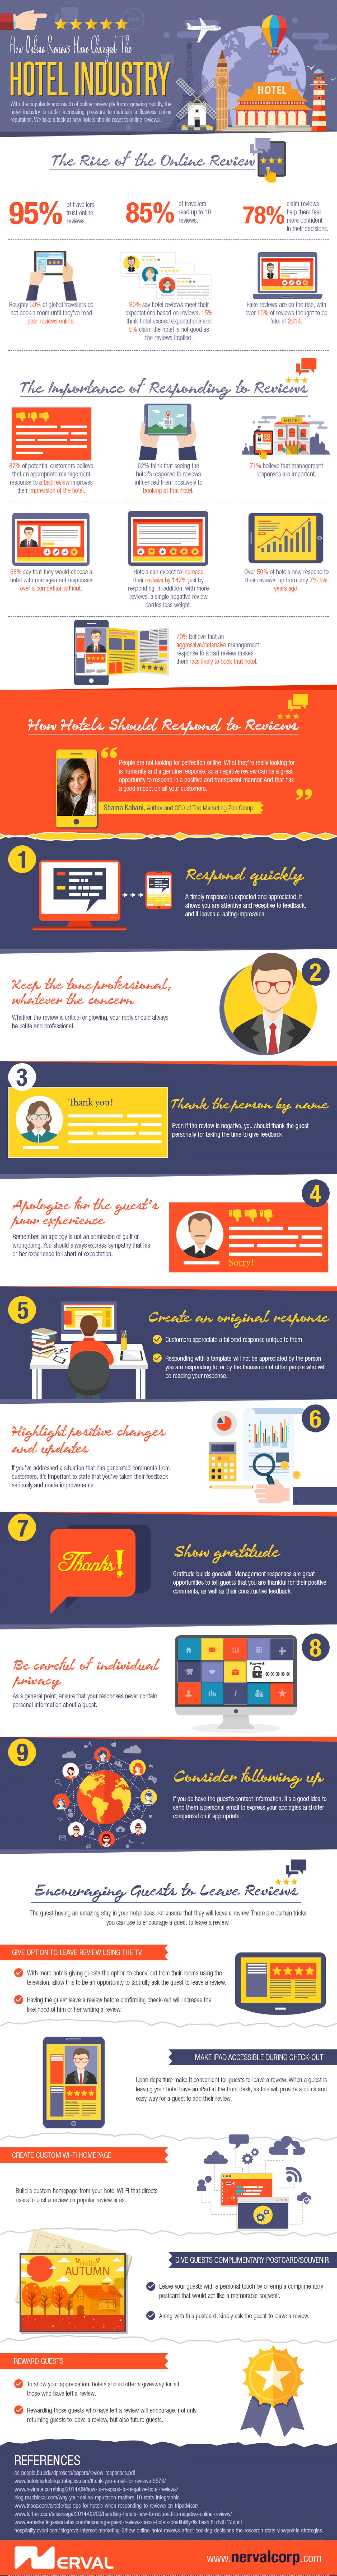 How Online Reviews Have Changed the Hotel Industry Infographic